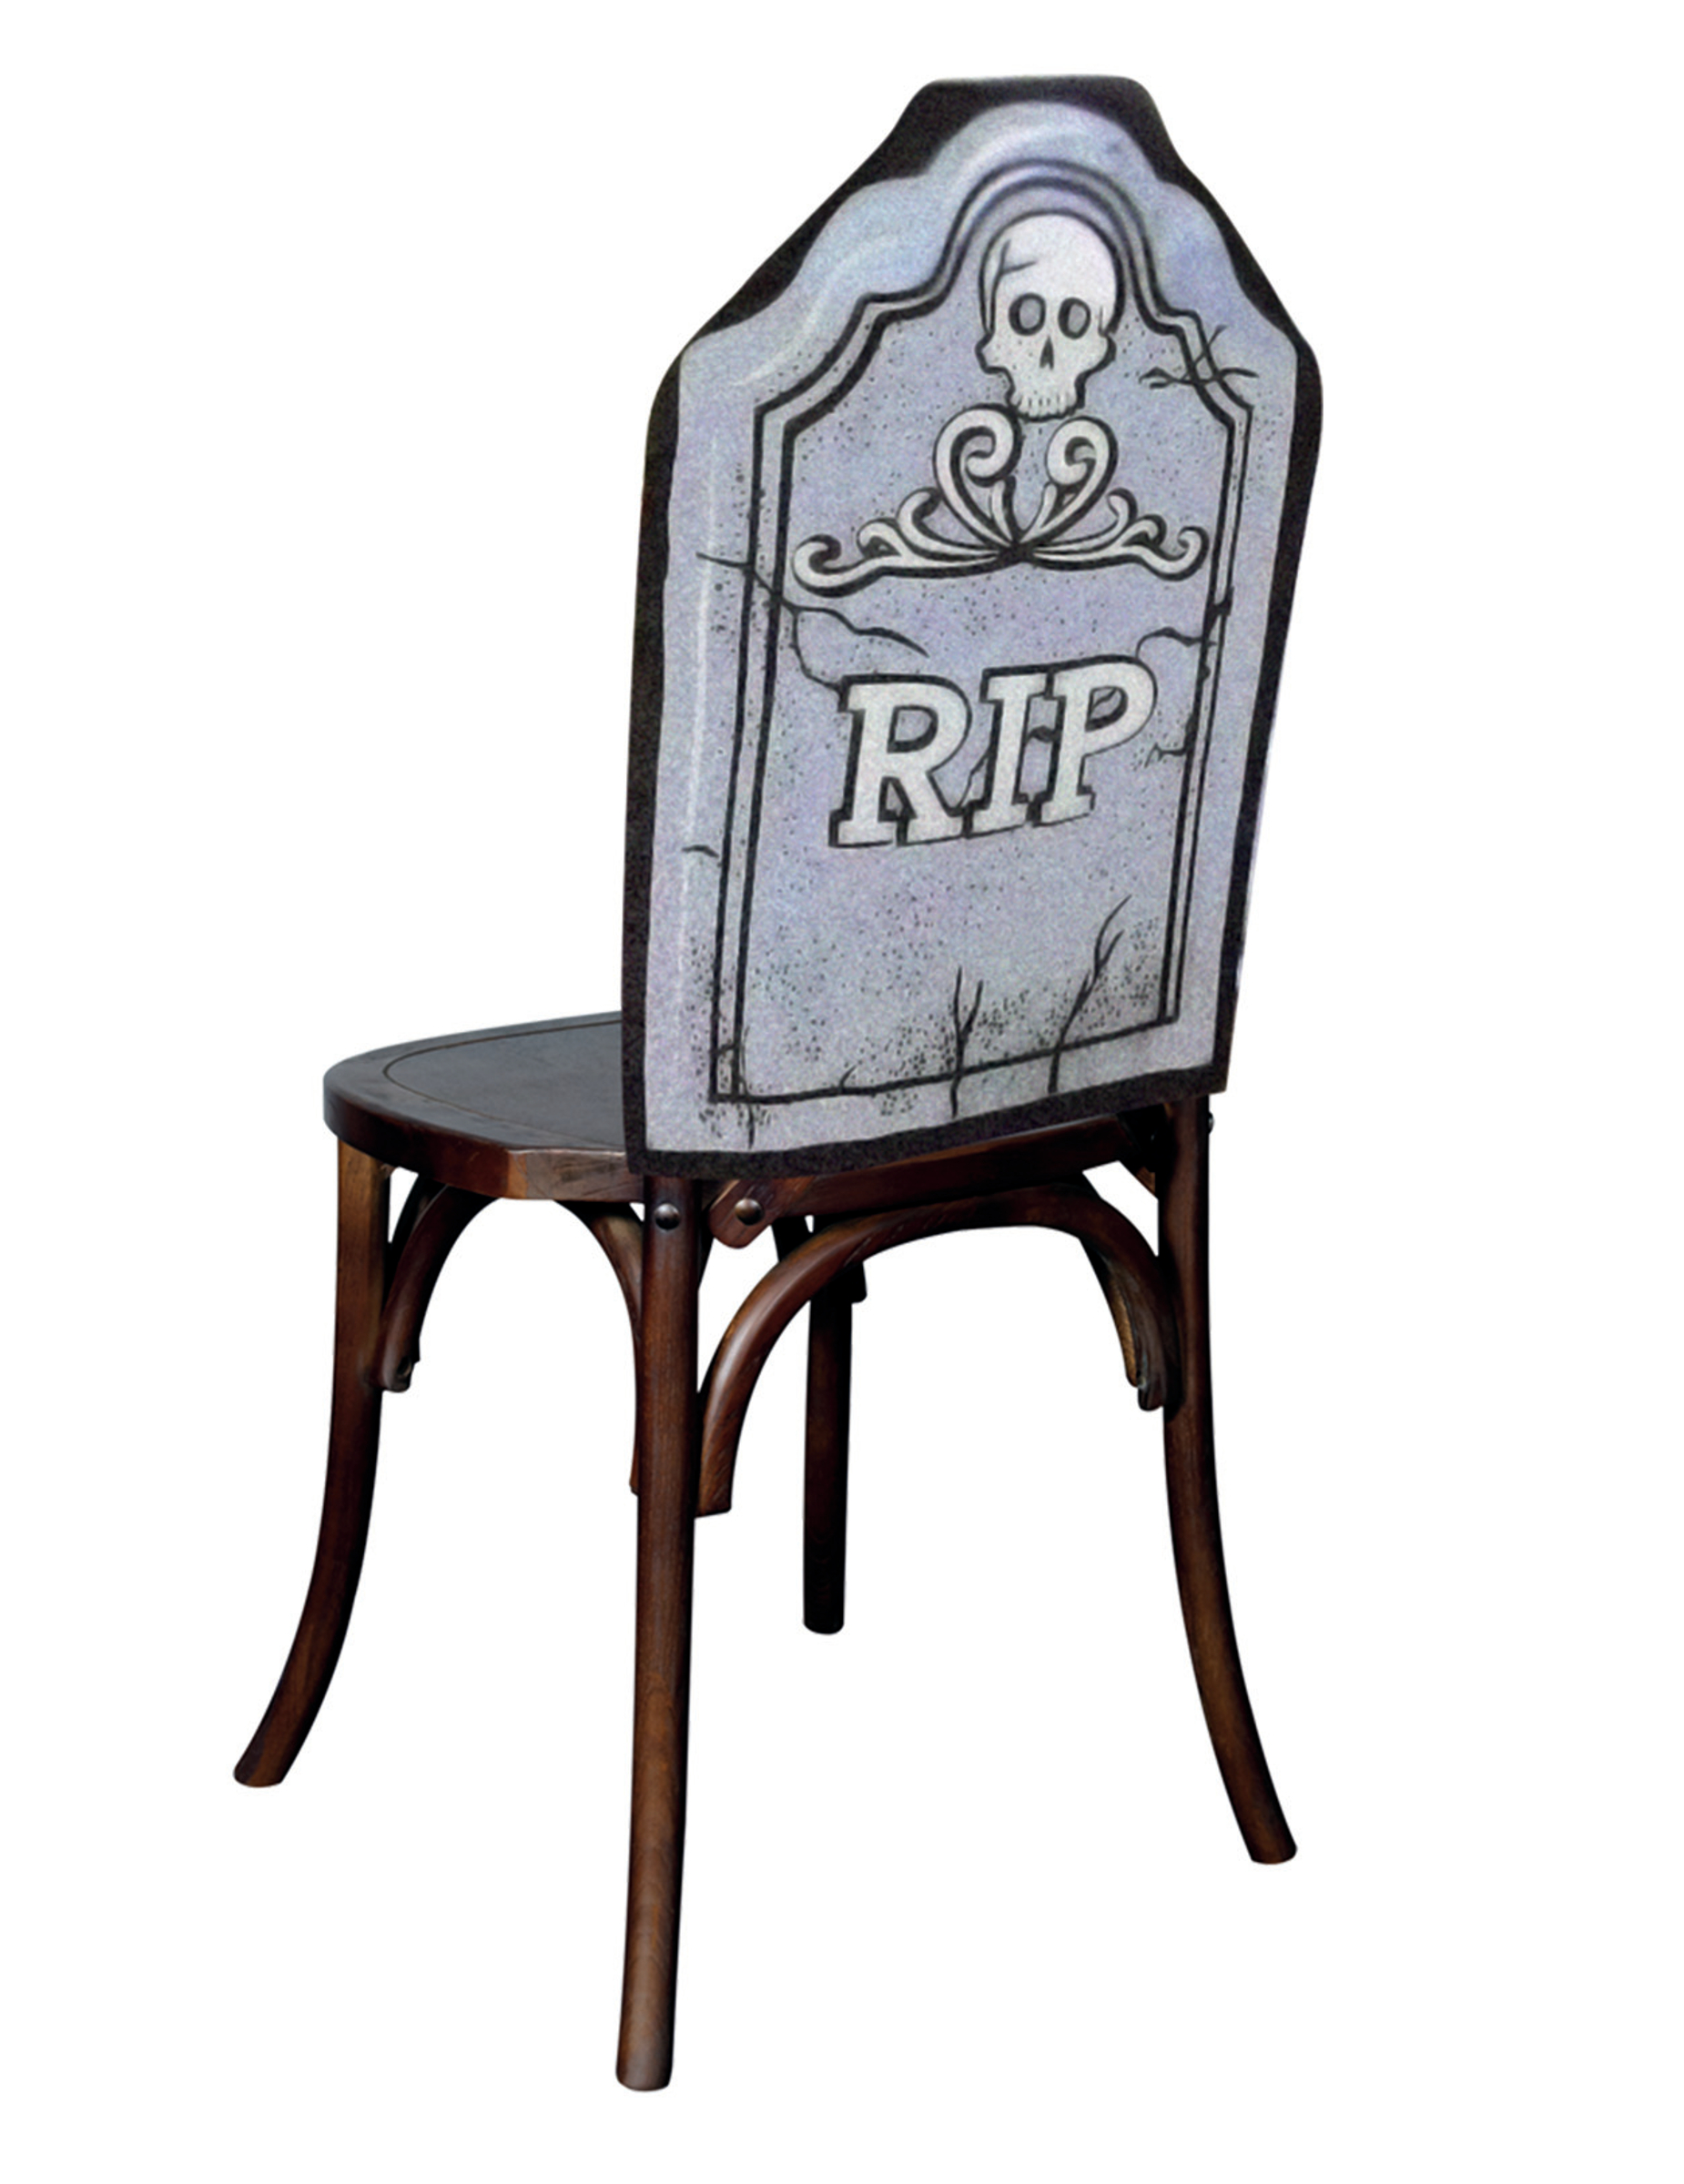 Housse de chaise rip 48 x 61 cm halloween deguise toi for Housse de chaise largeur 50 cm